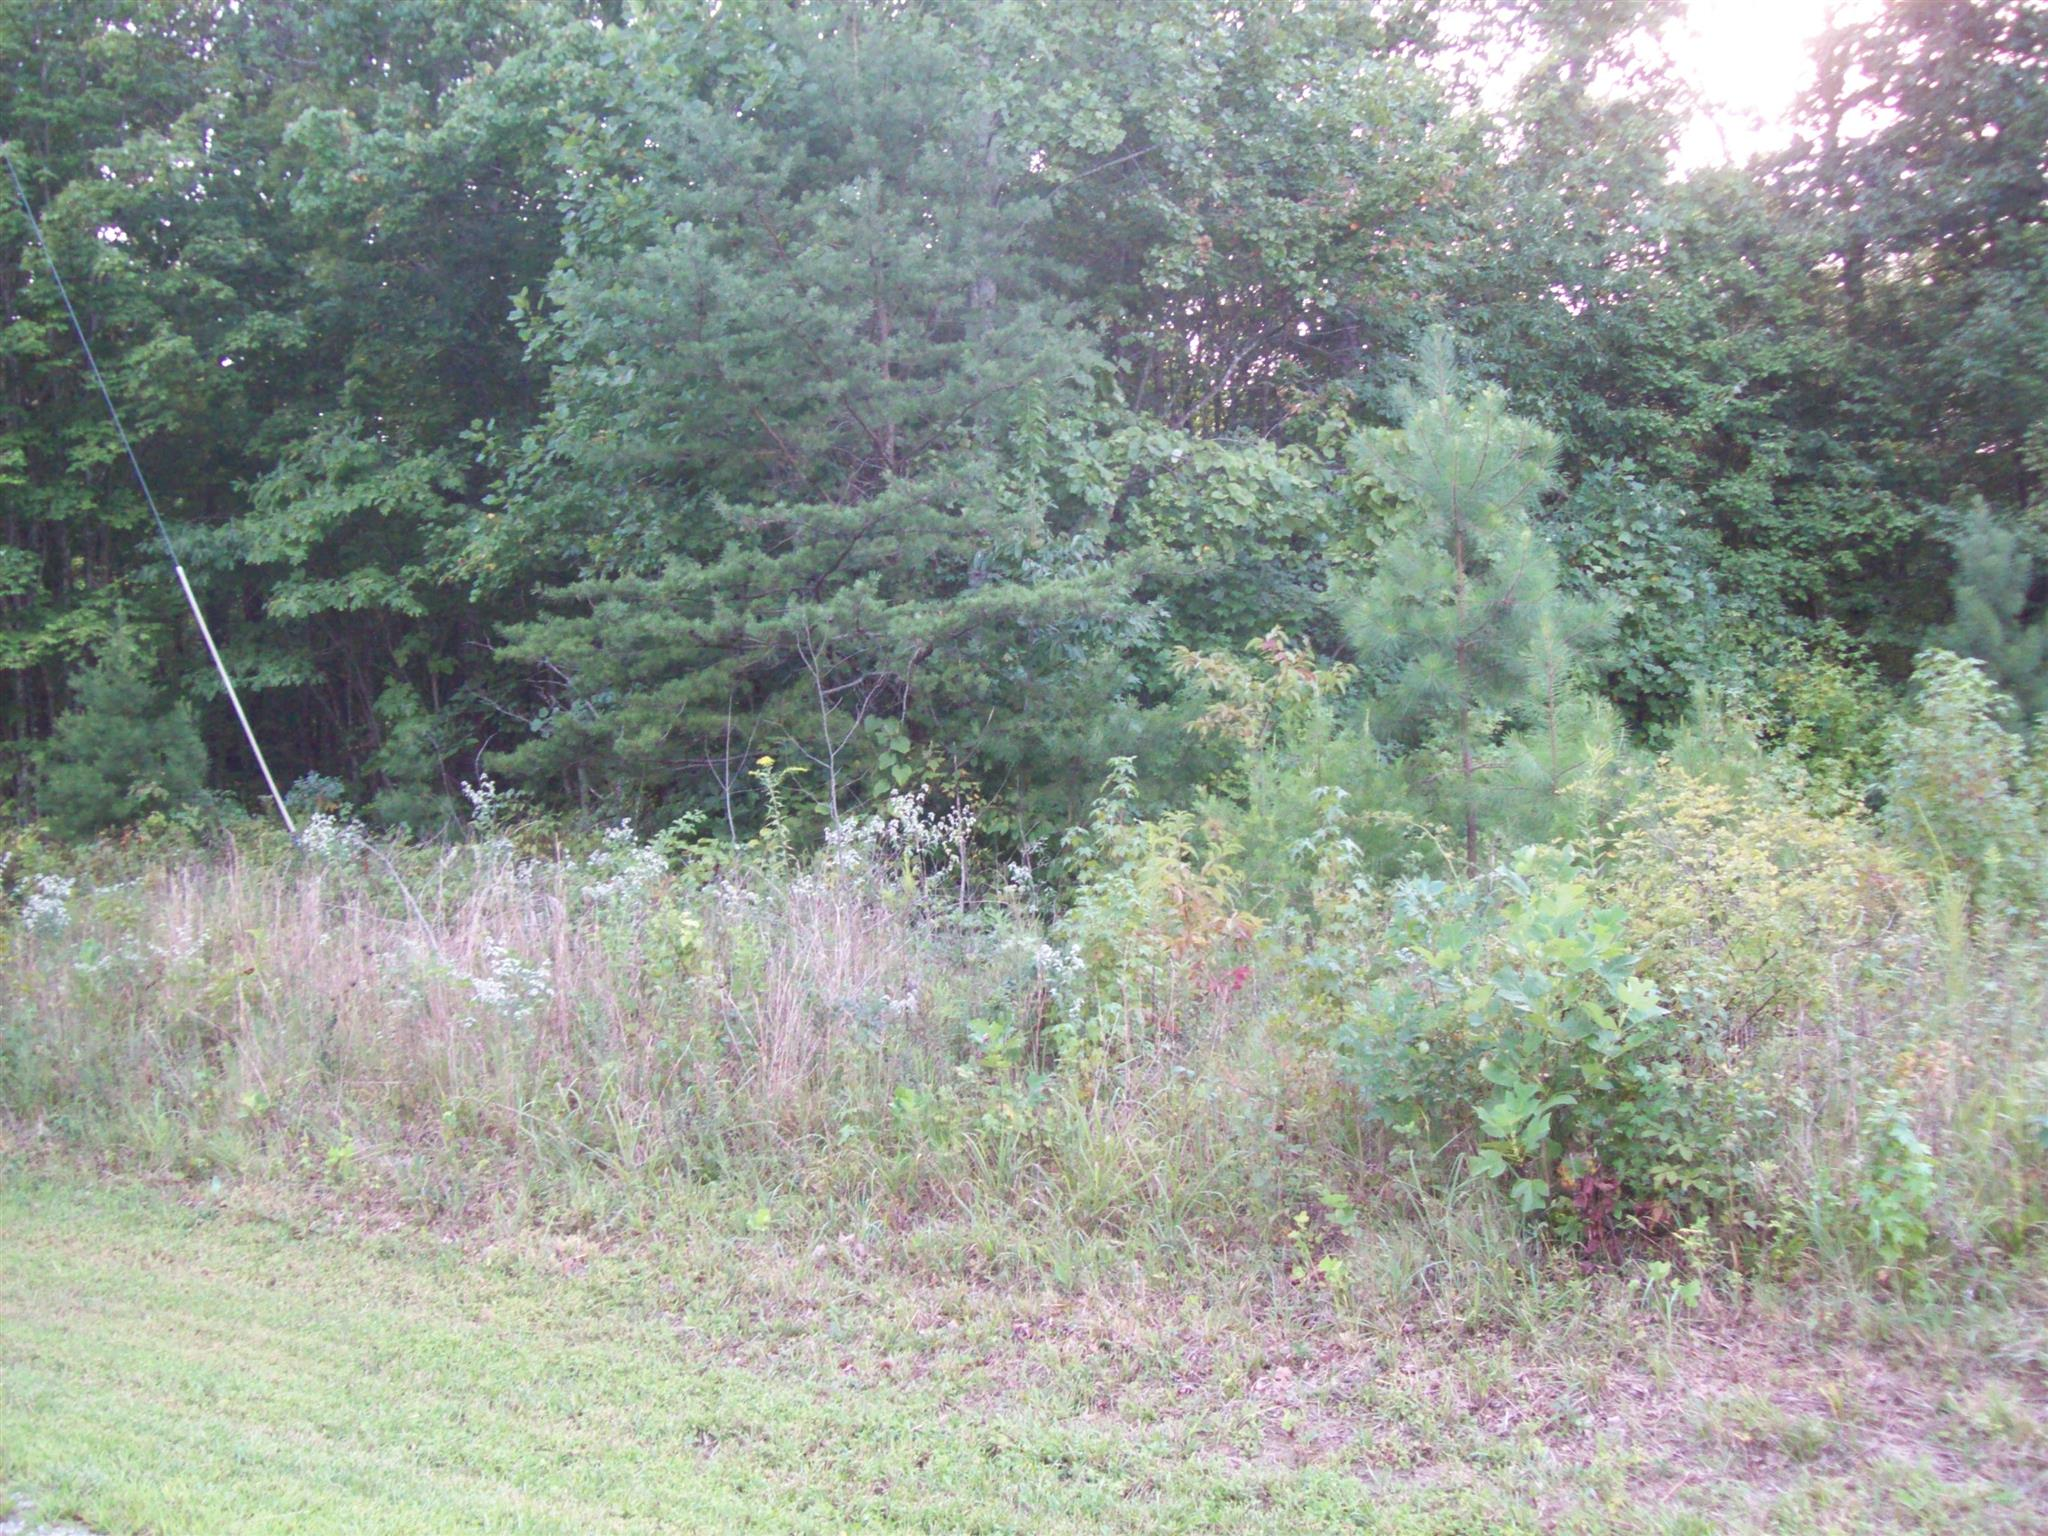 0 Keith Springs Mtn Rd, Belvidere, TN 37306 - Belvidere, TN real estate listing